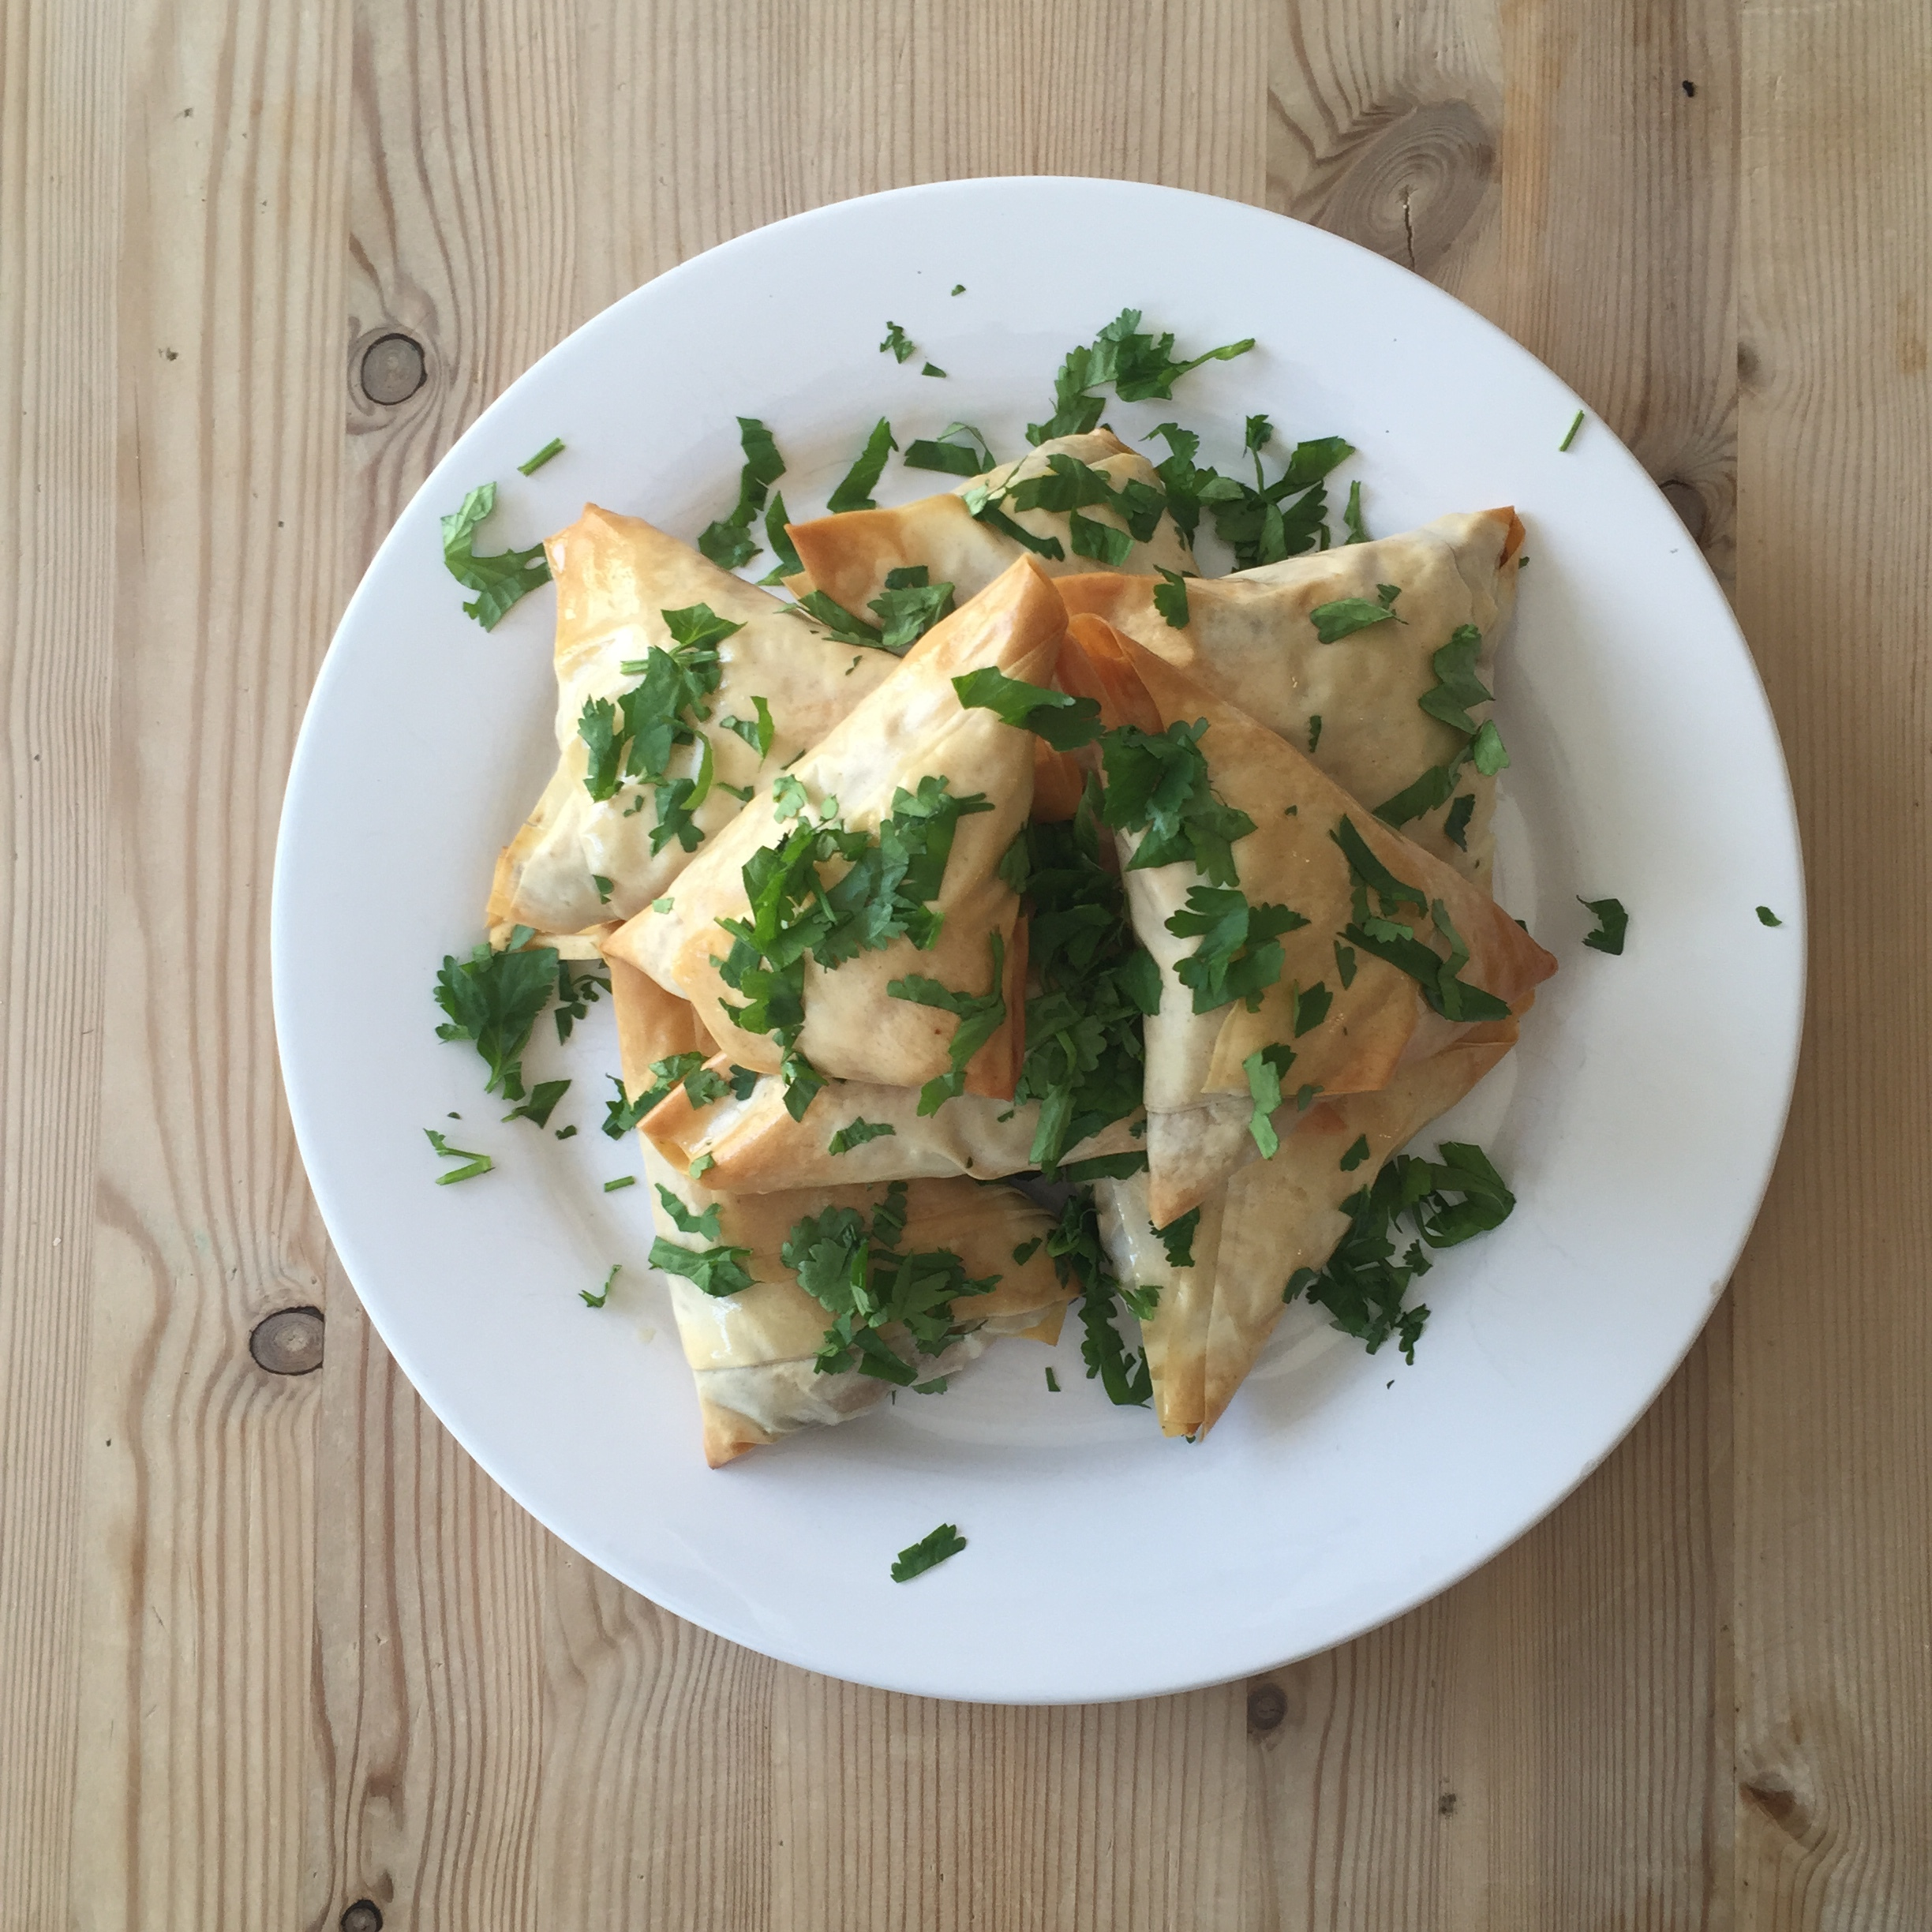 Baked sweet potato and carrot samosas